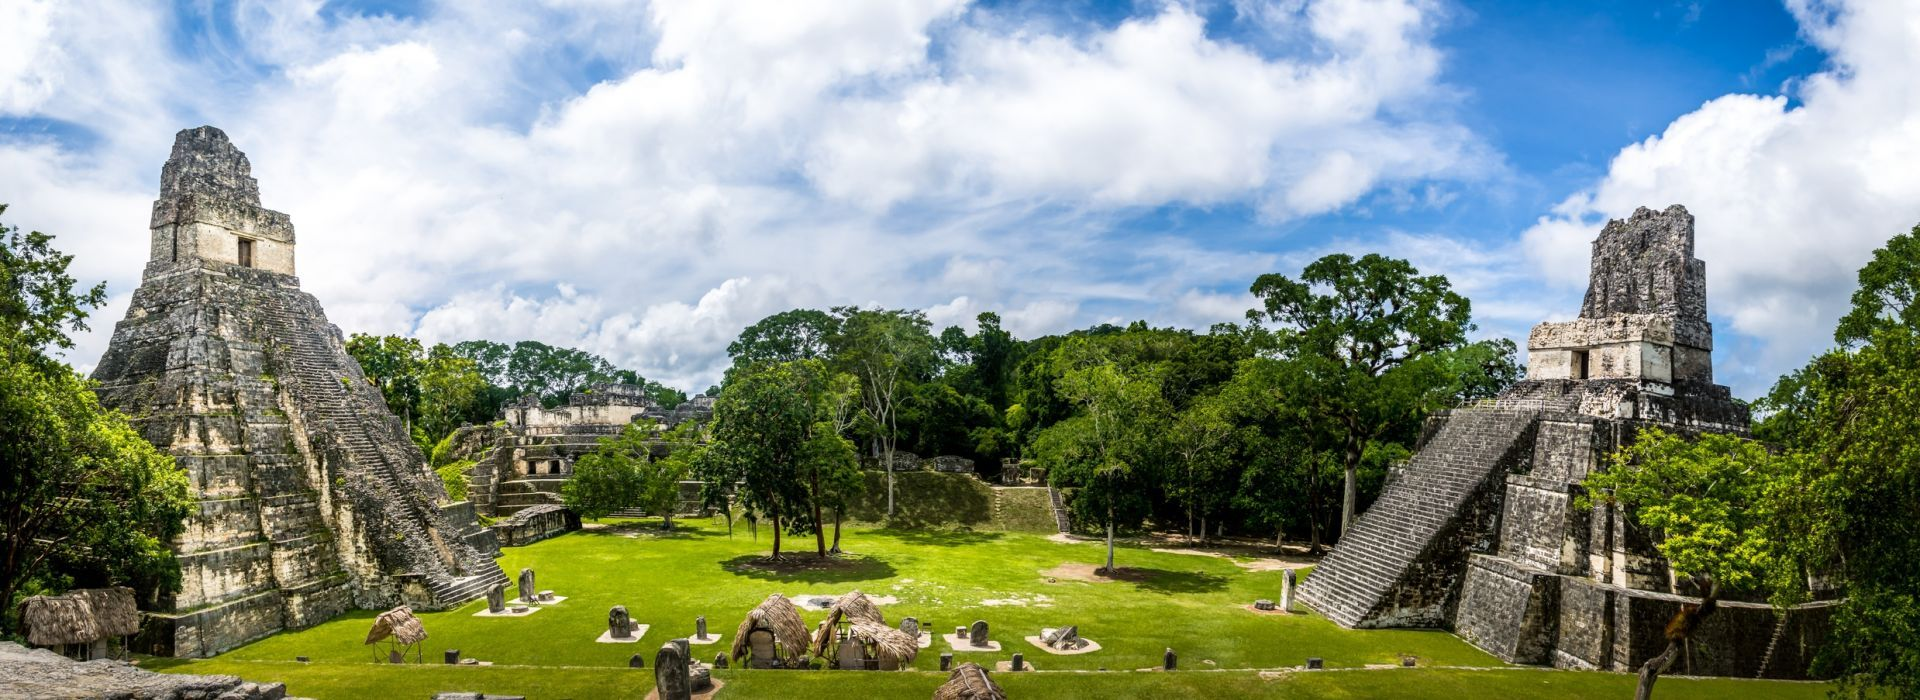 Cultural, religious and historic sites Tours in Guatemala City